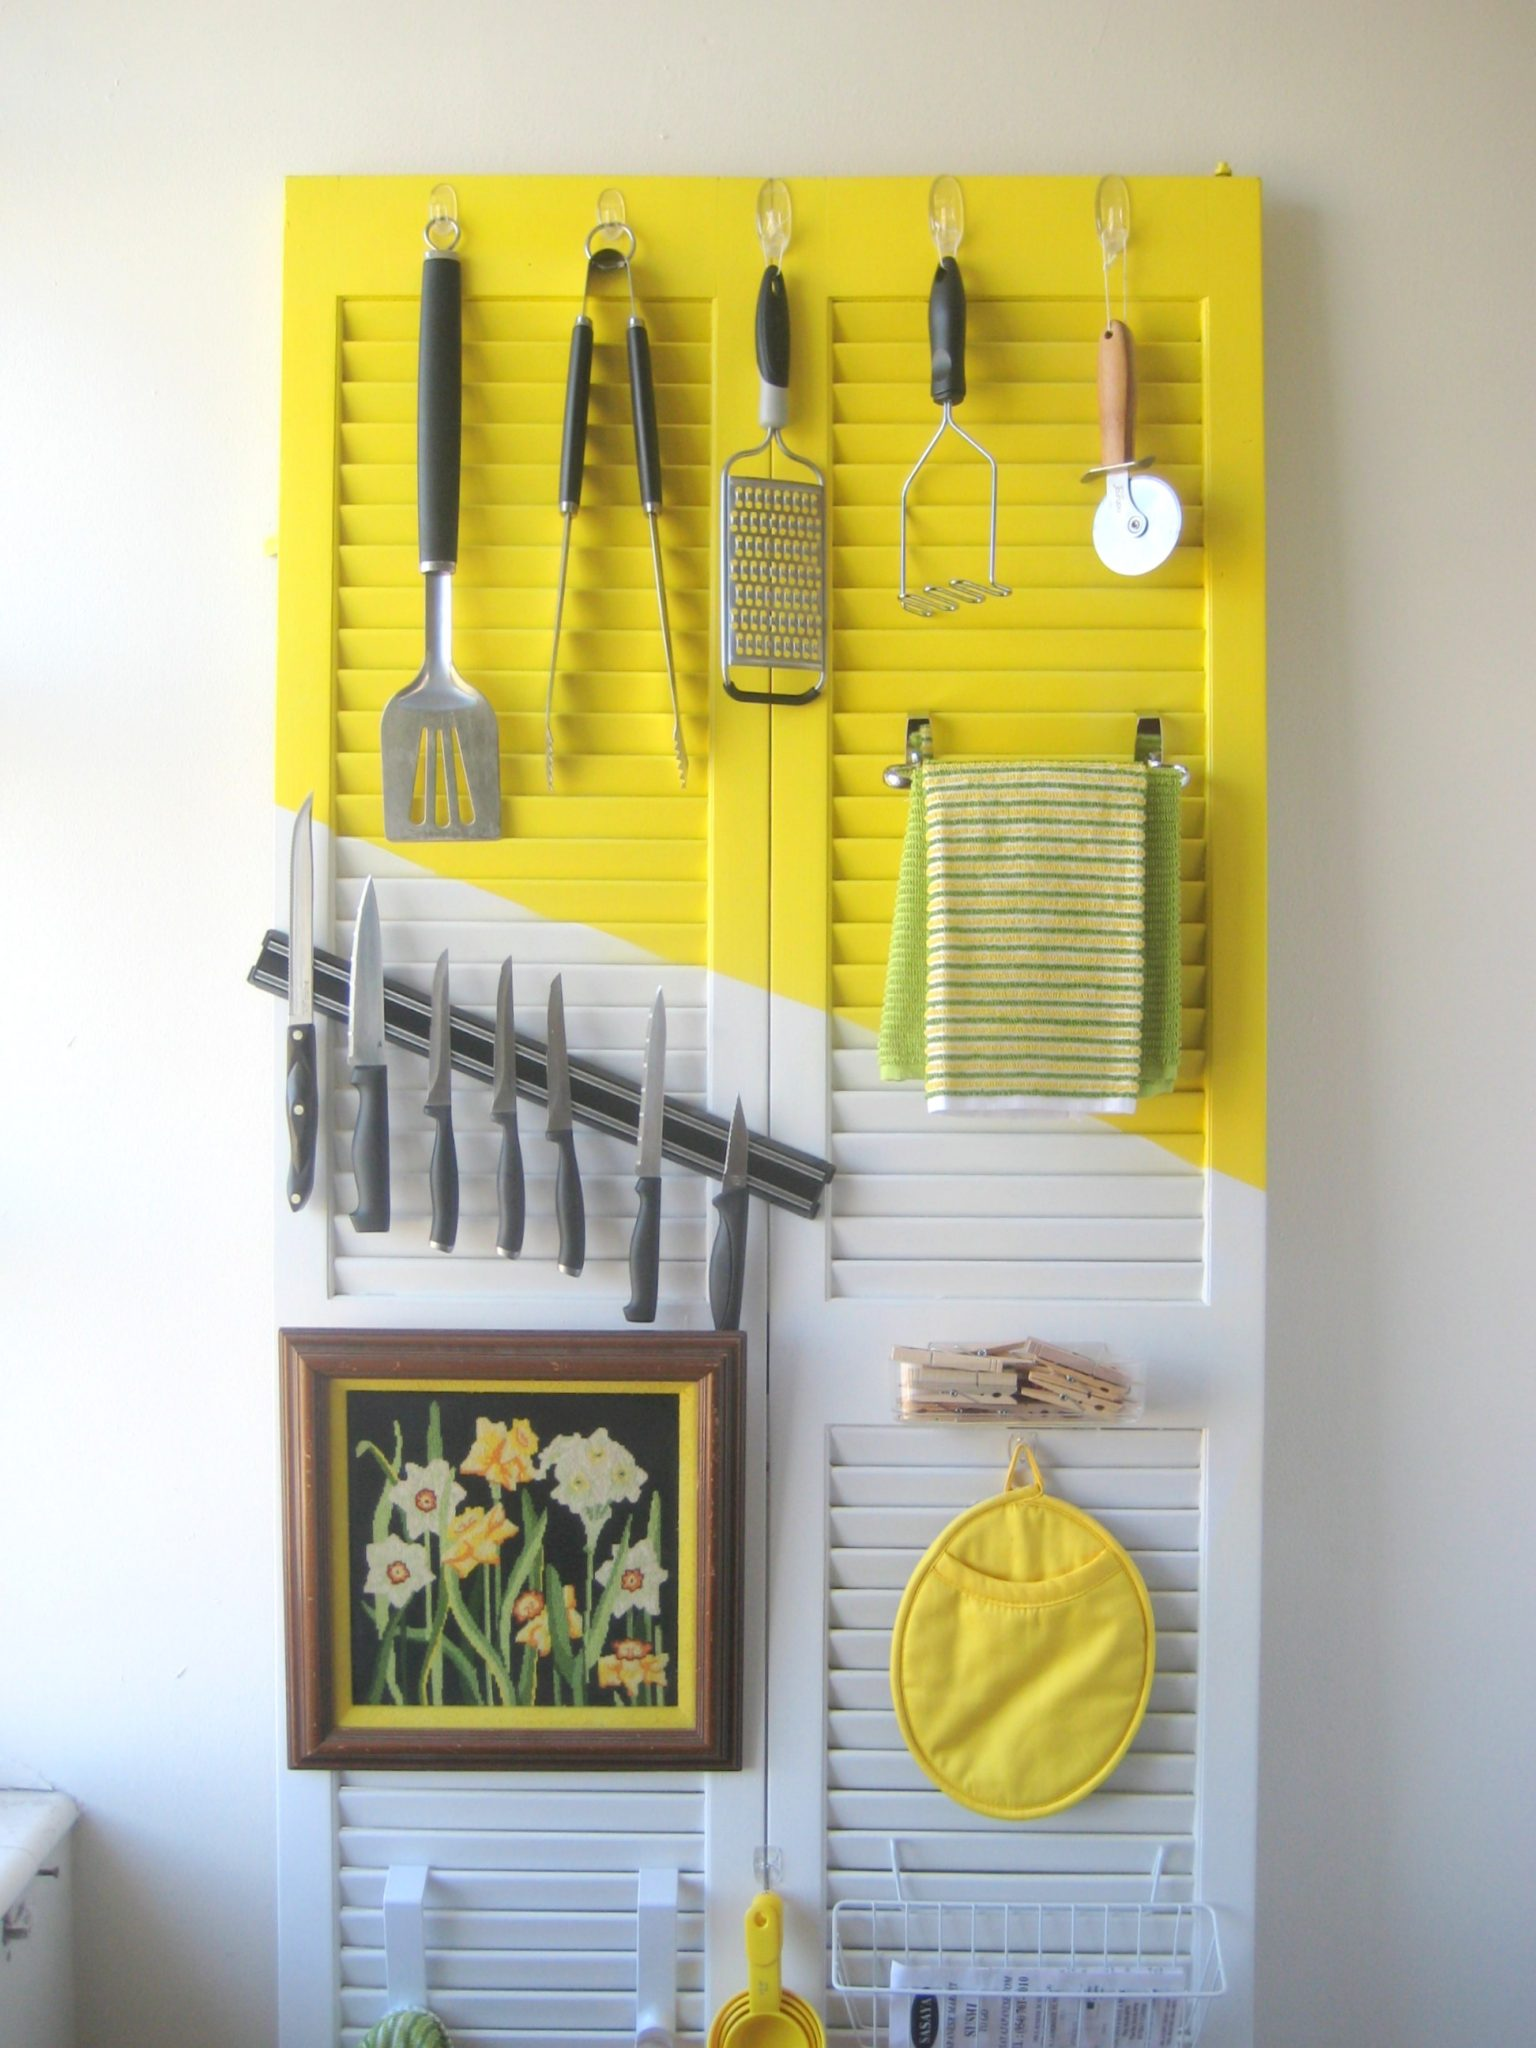 How to organize a kitchen (with a door!) - C.R.A.F.T.